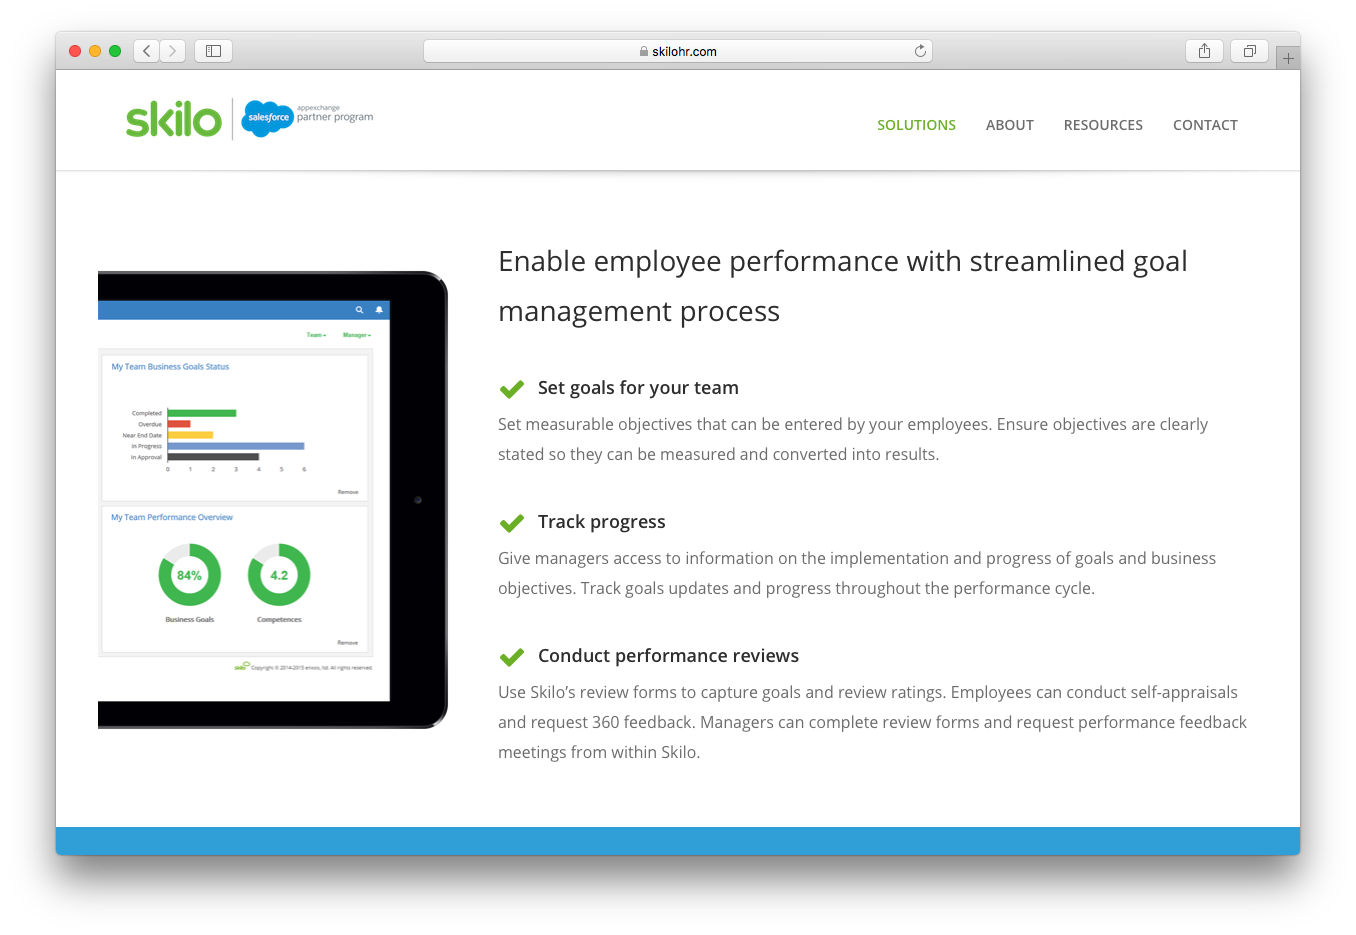 Skilo performance management review employee performance streamlined goal management process track progress